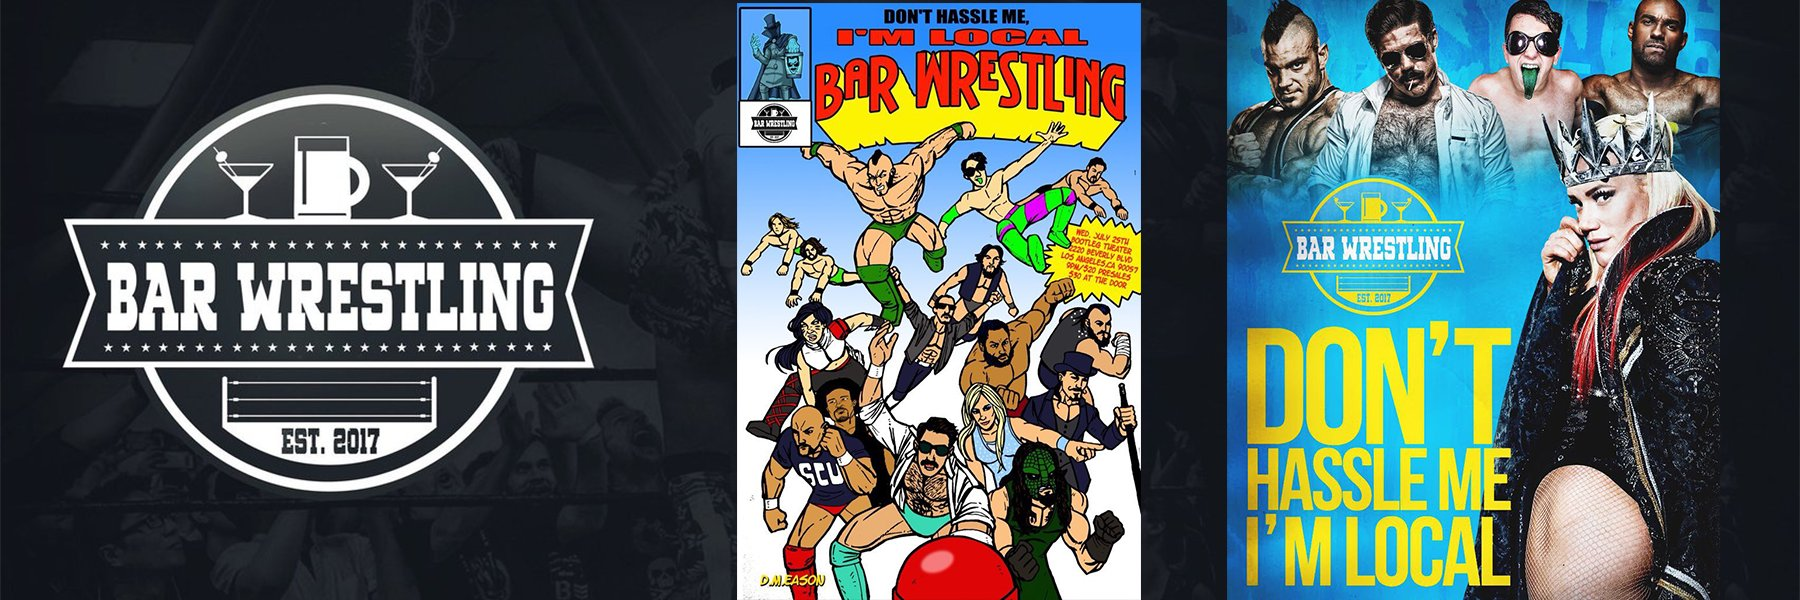 Bar Wrestling 15:  Joey Ryan, Taya Valkyrie, PJ Black, Willie Mack, Scorpio